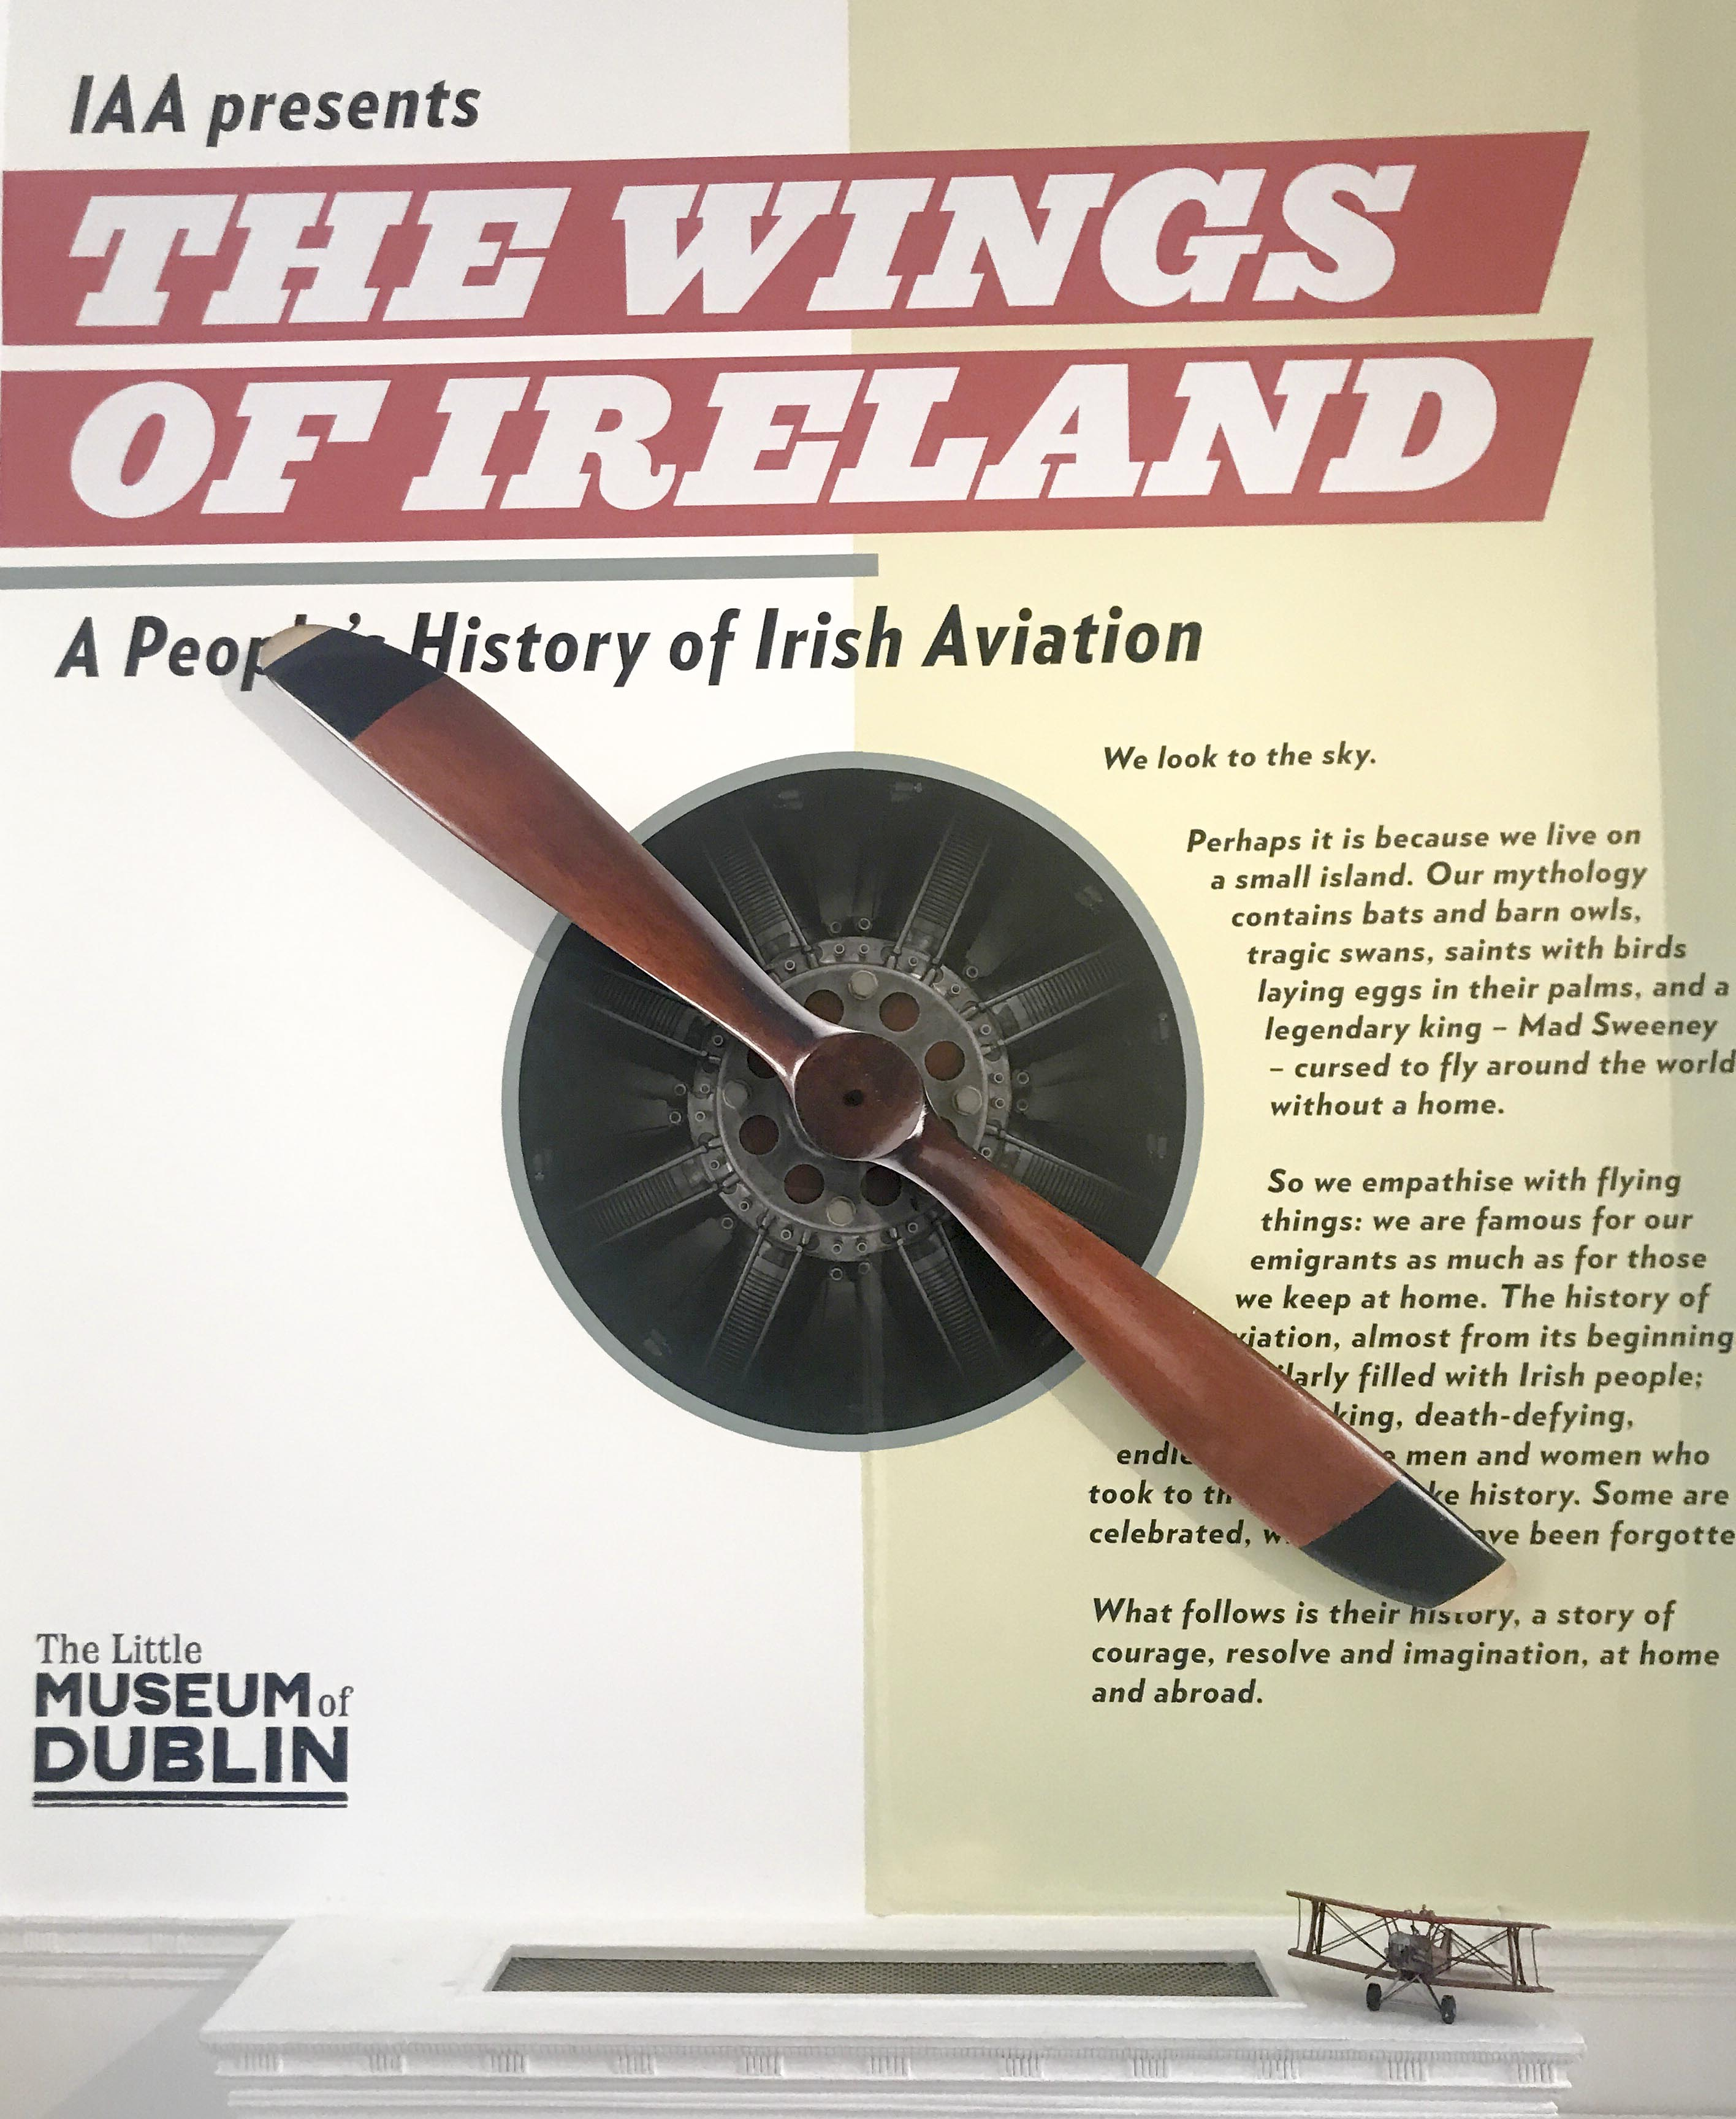 IAA Exhibition at the Little Museum of Dublin